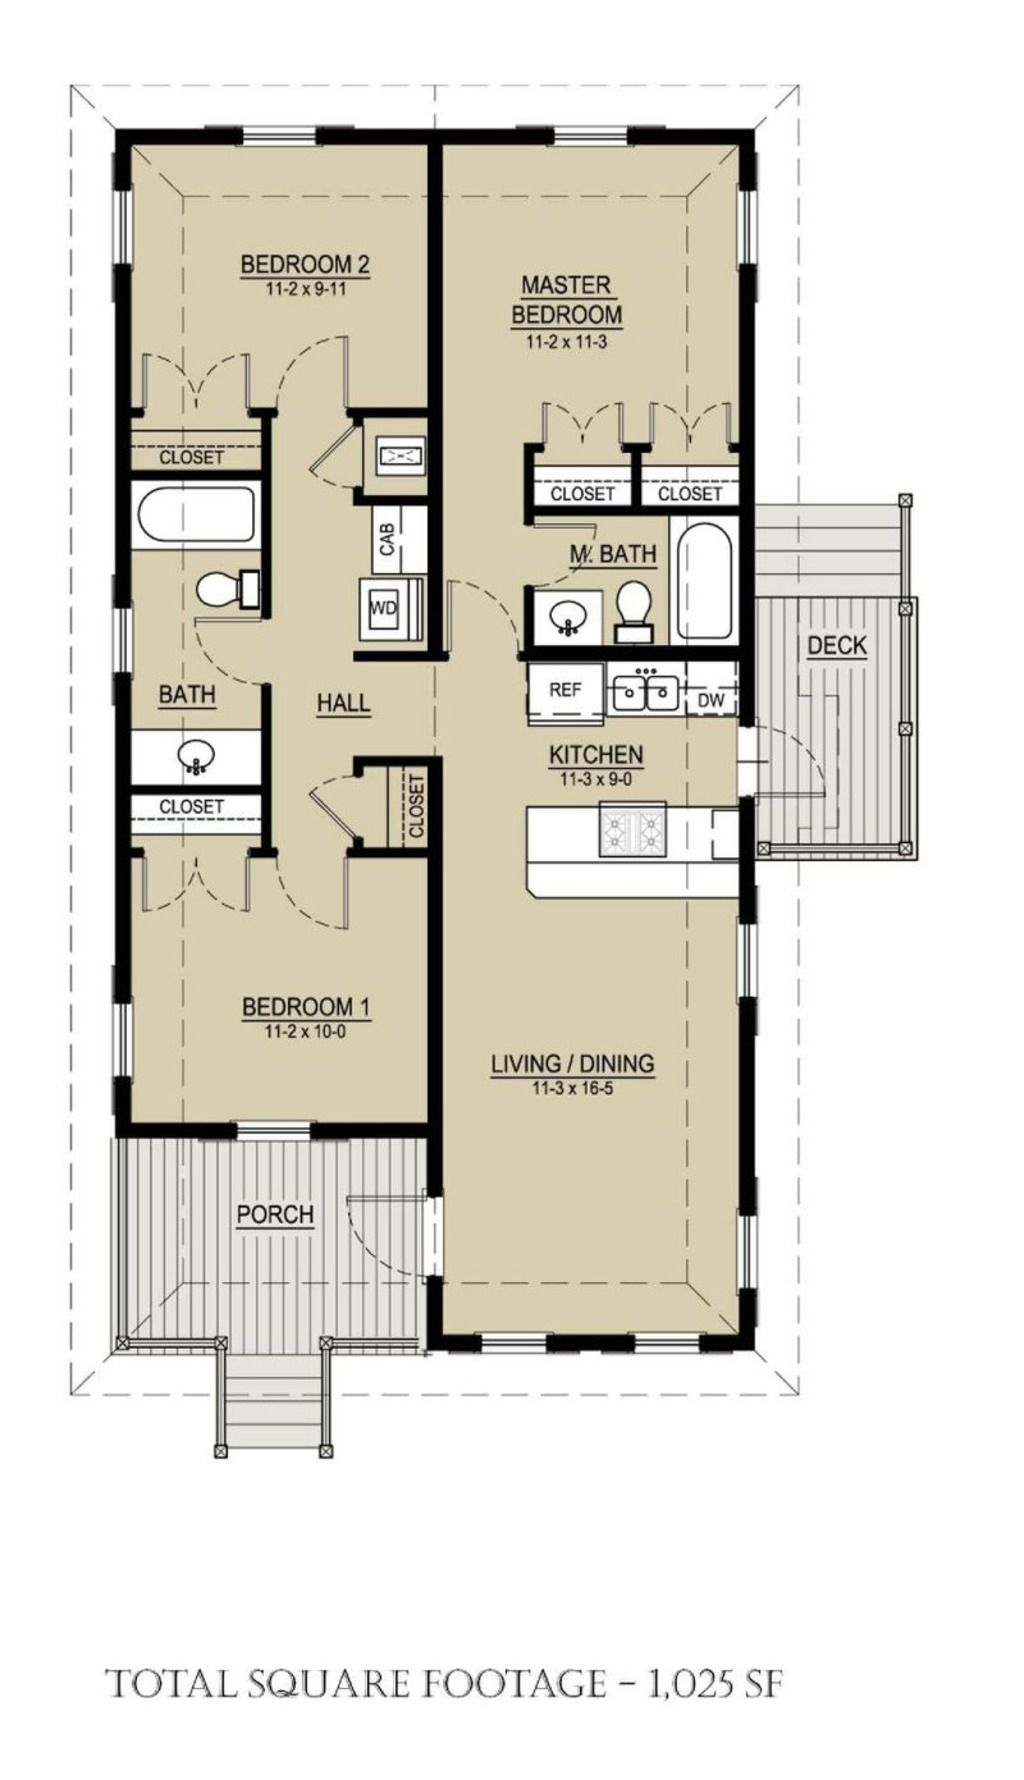 Cottage Style House Plan 3 Beds 2 Baths 1025 Sq Ft Plan 536 3 Cottage Floor Plans Container House Plans House Plans